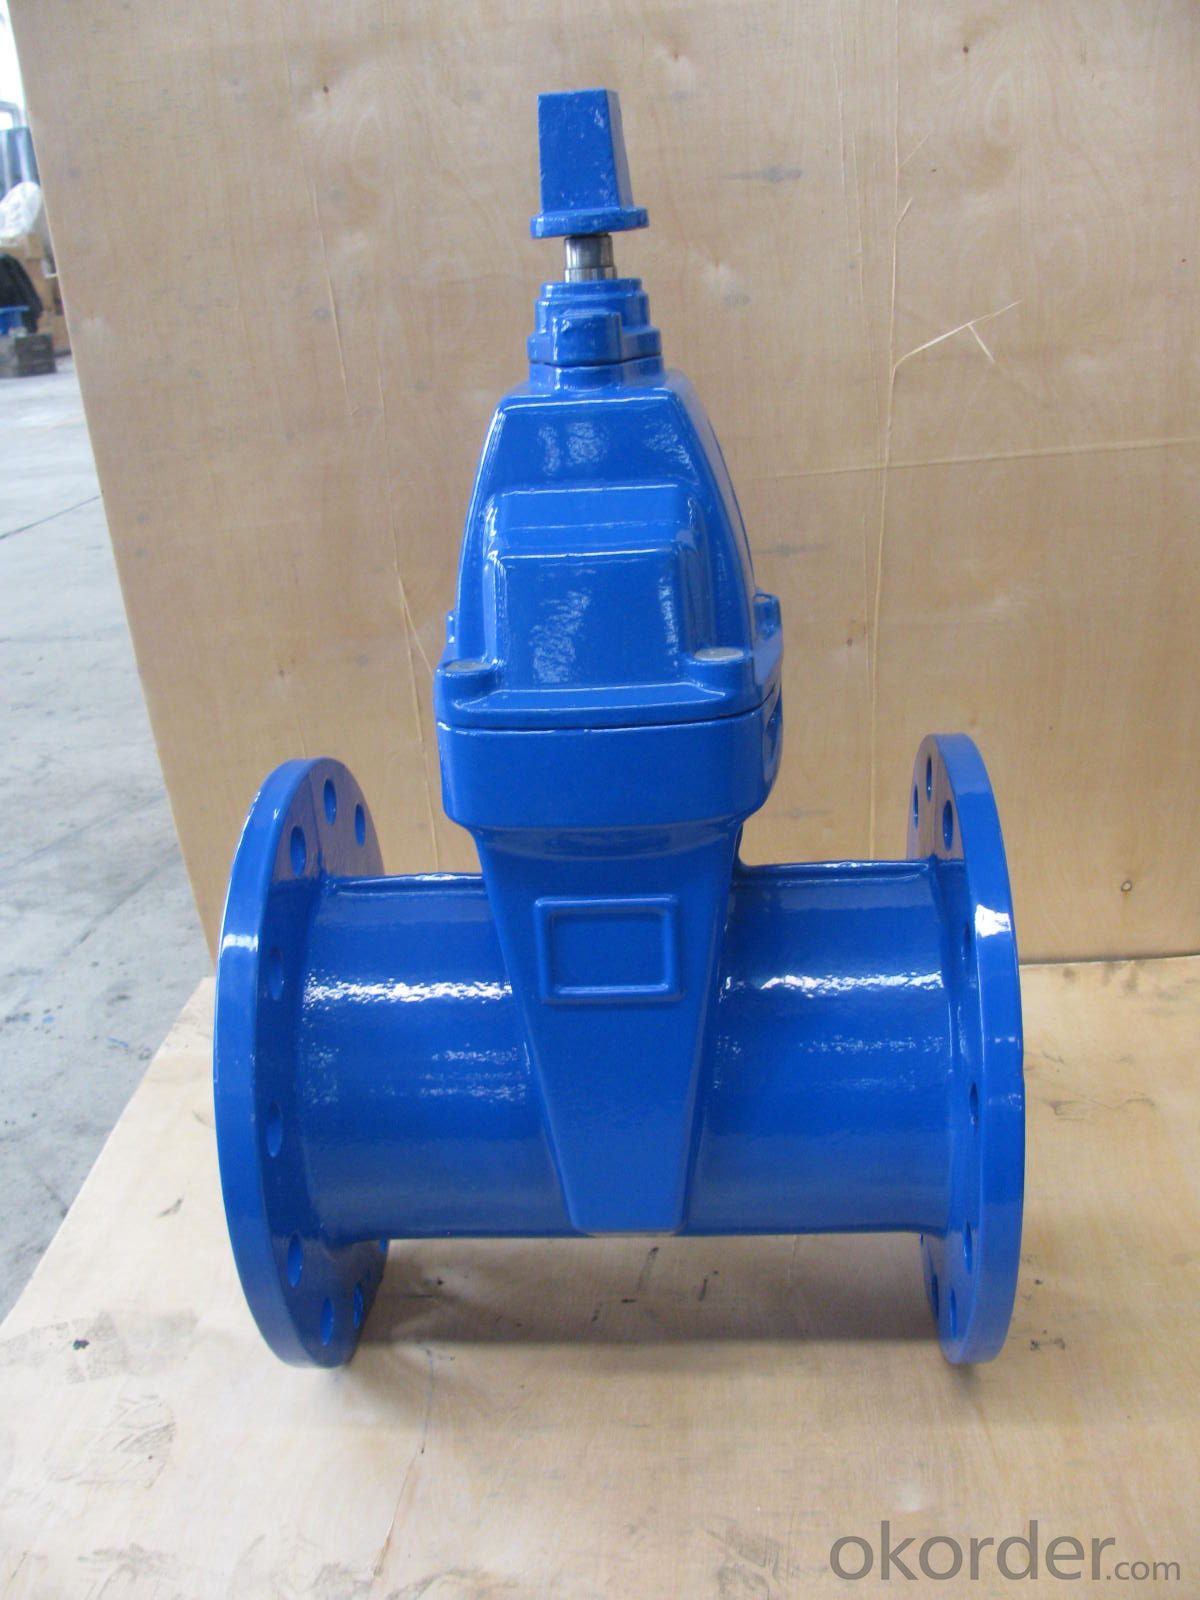 Ductle iron gate valve with drain BS NRS resilient seat flanged